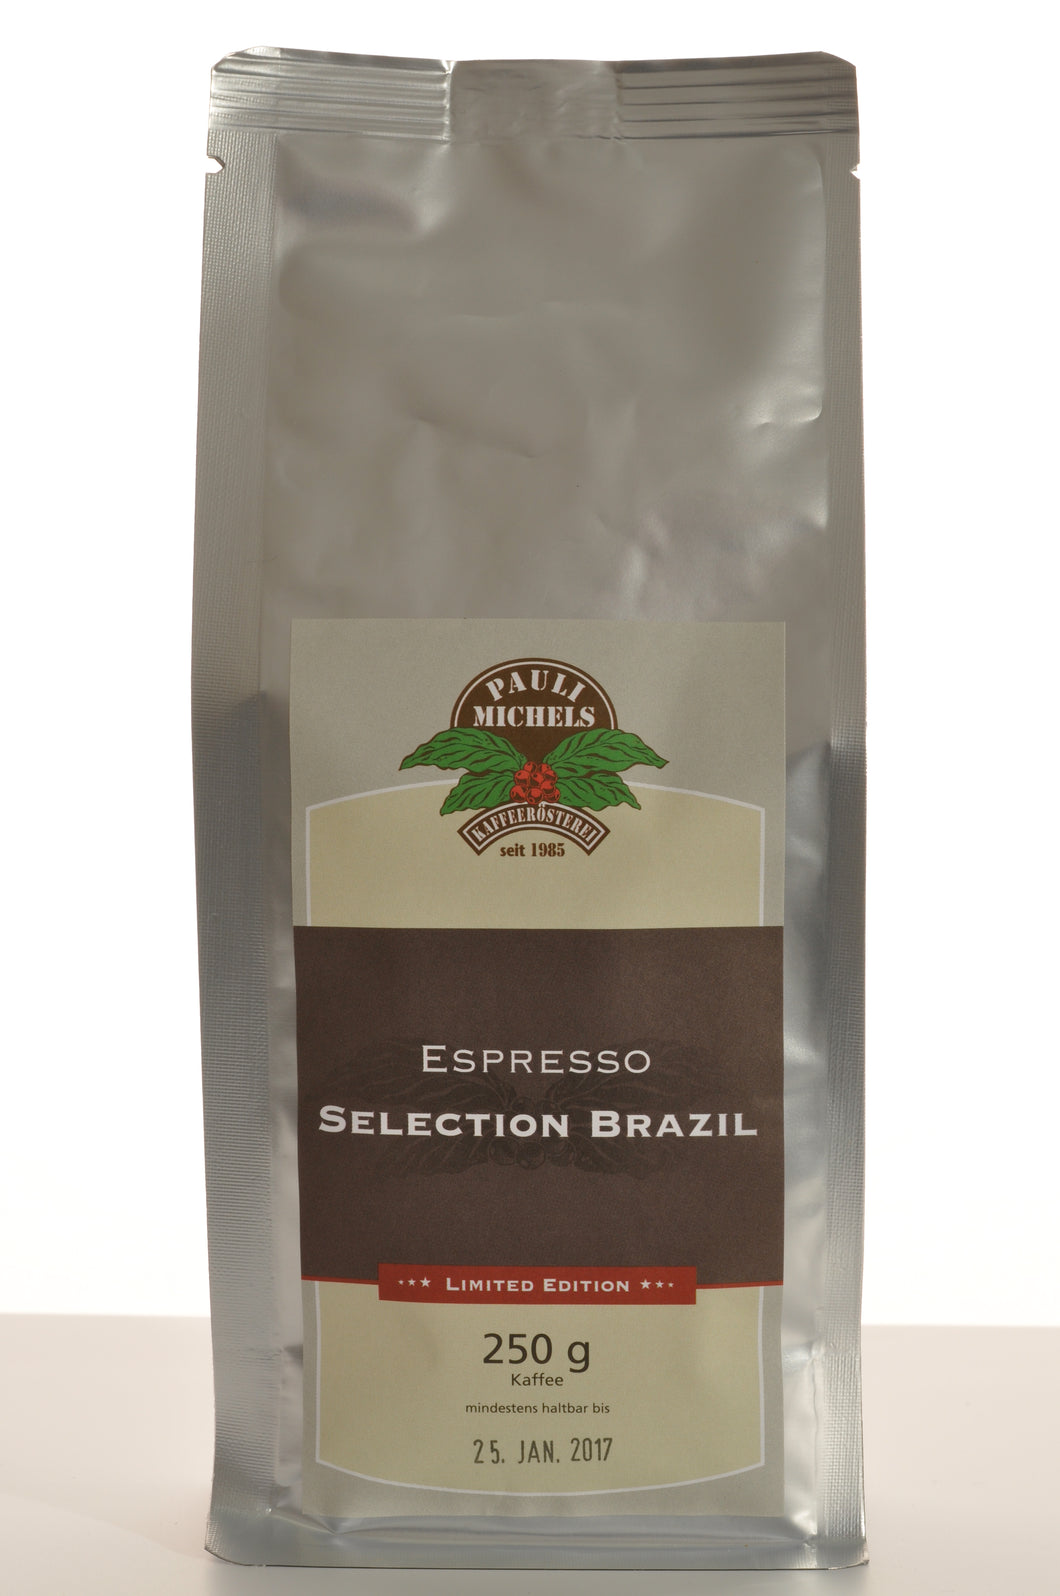 Espresso Selection Brazil